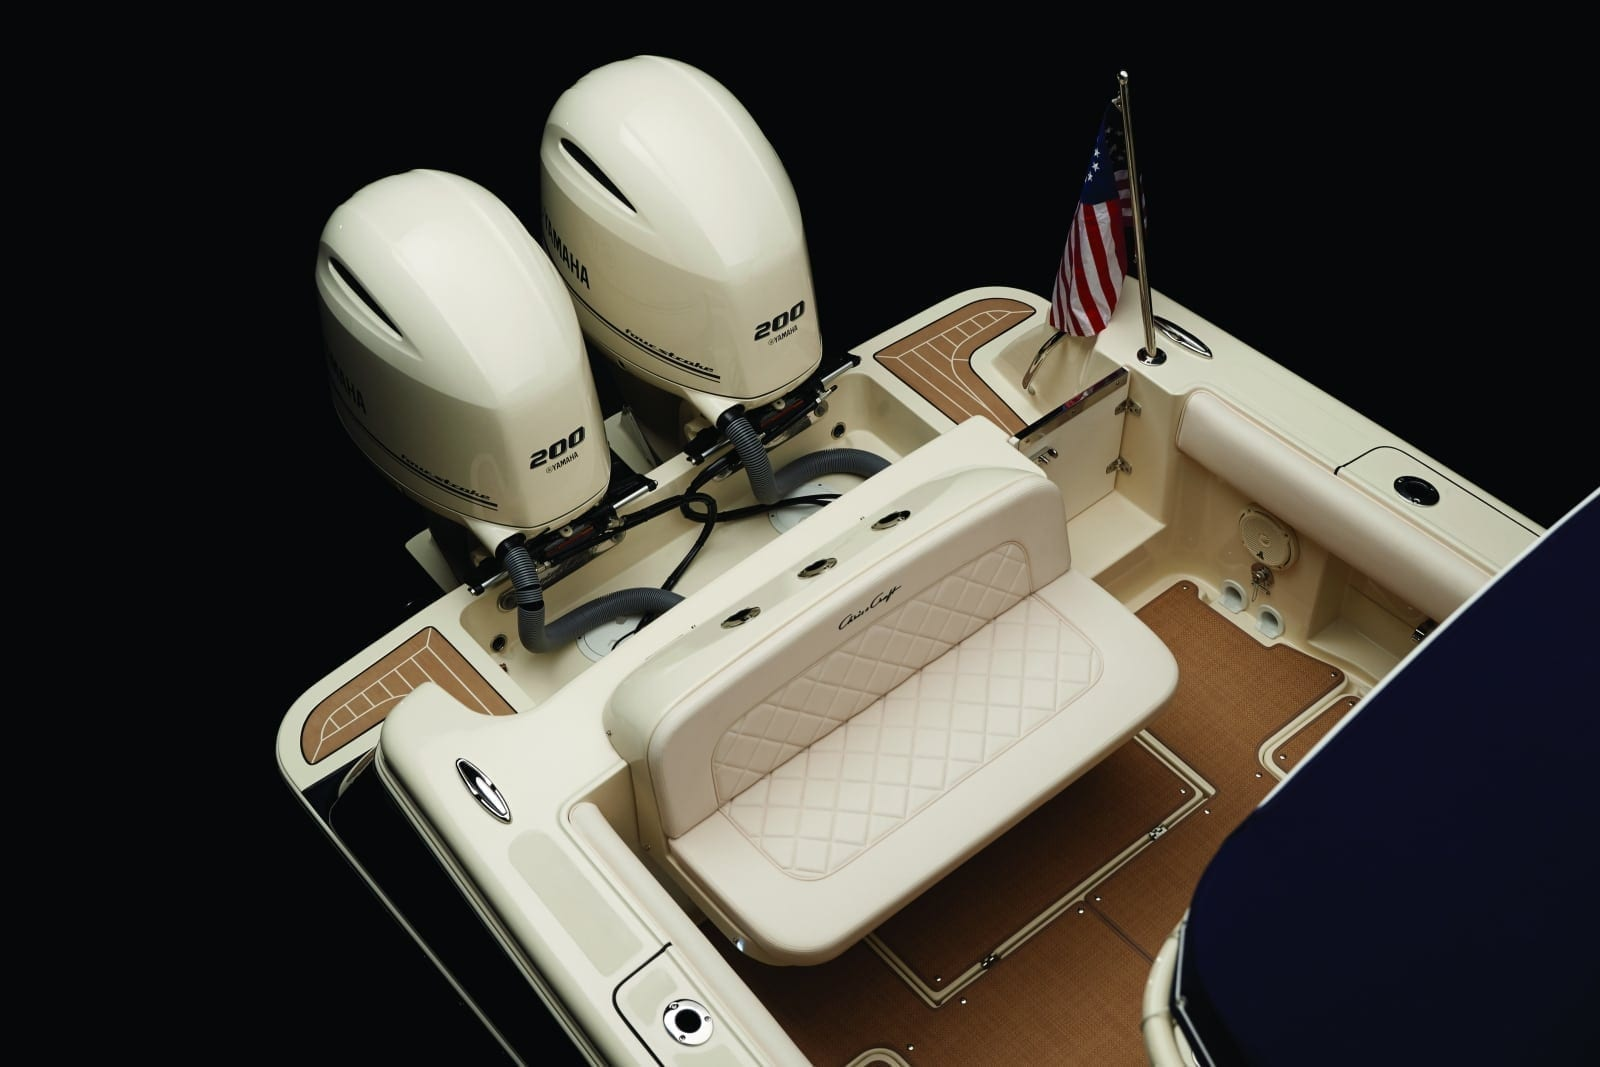 Chris Craft Catalina 26 Dual Outboard Engines